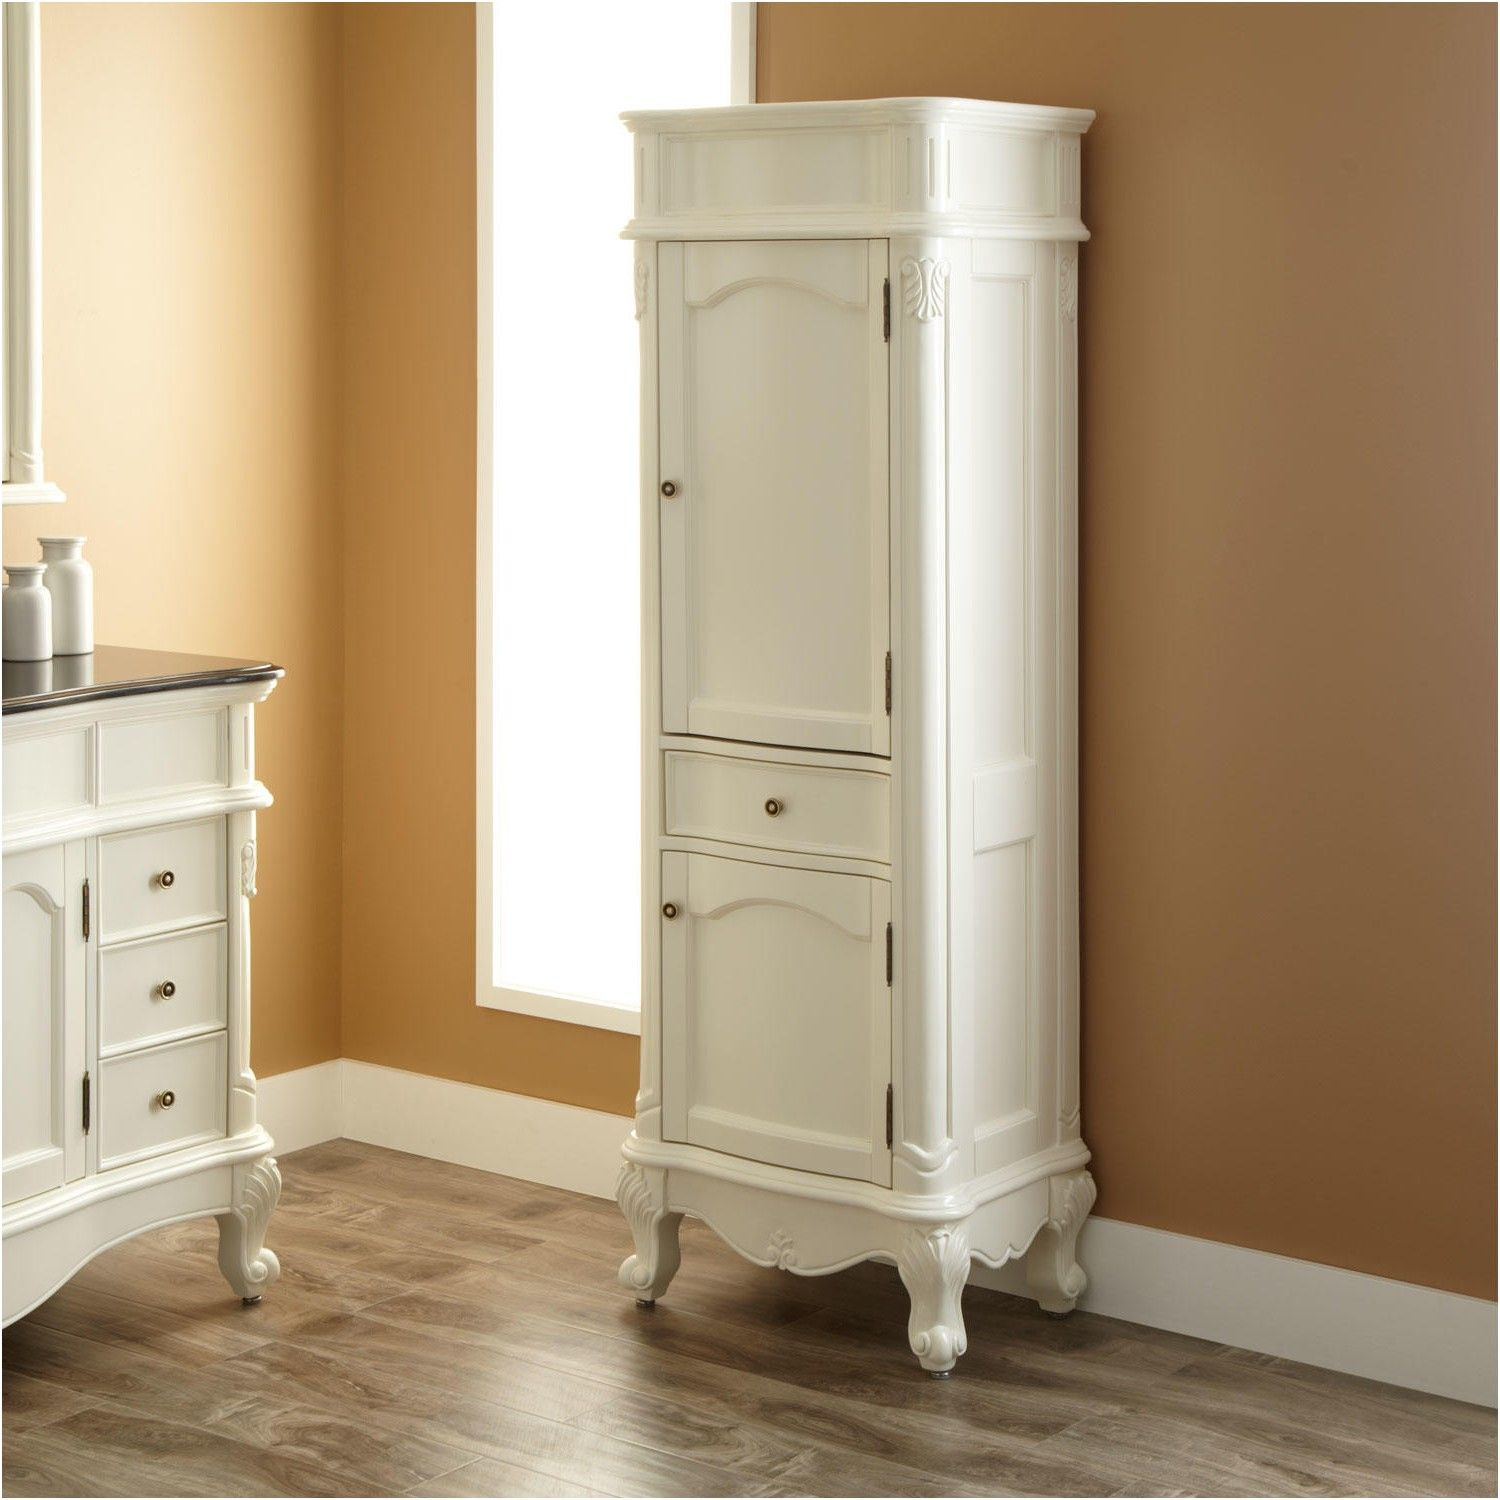 Target Medicine Cabinet Interesting Interesting Bathroom Cabinets Tar Storage E On Inspiration From Design Inspiration